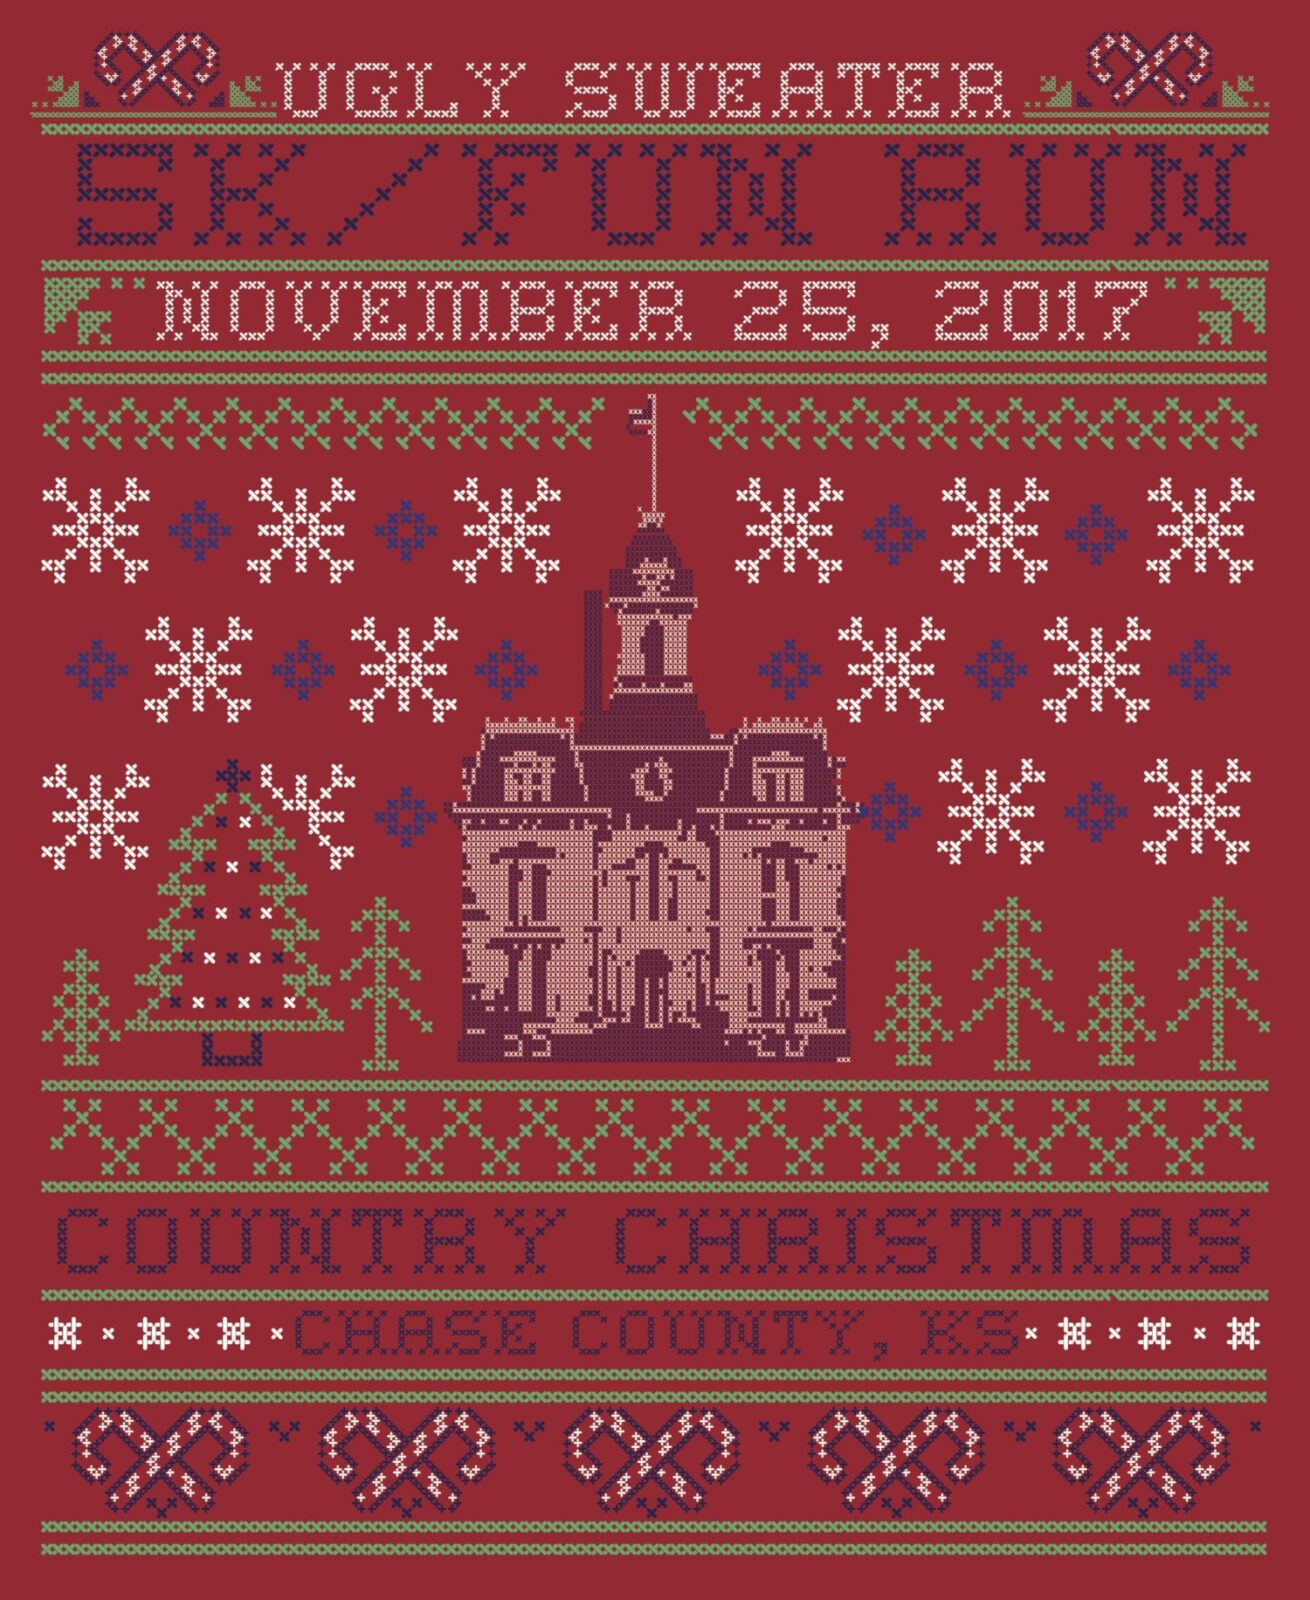 Annual Country Christmas UGLY SWEATER RUN registration information